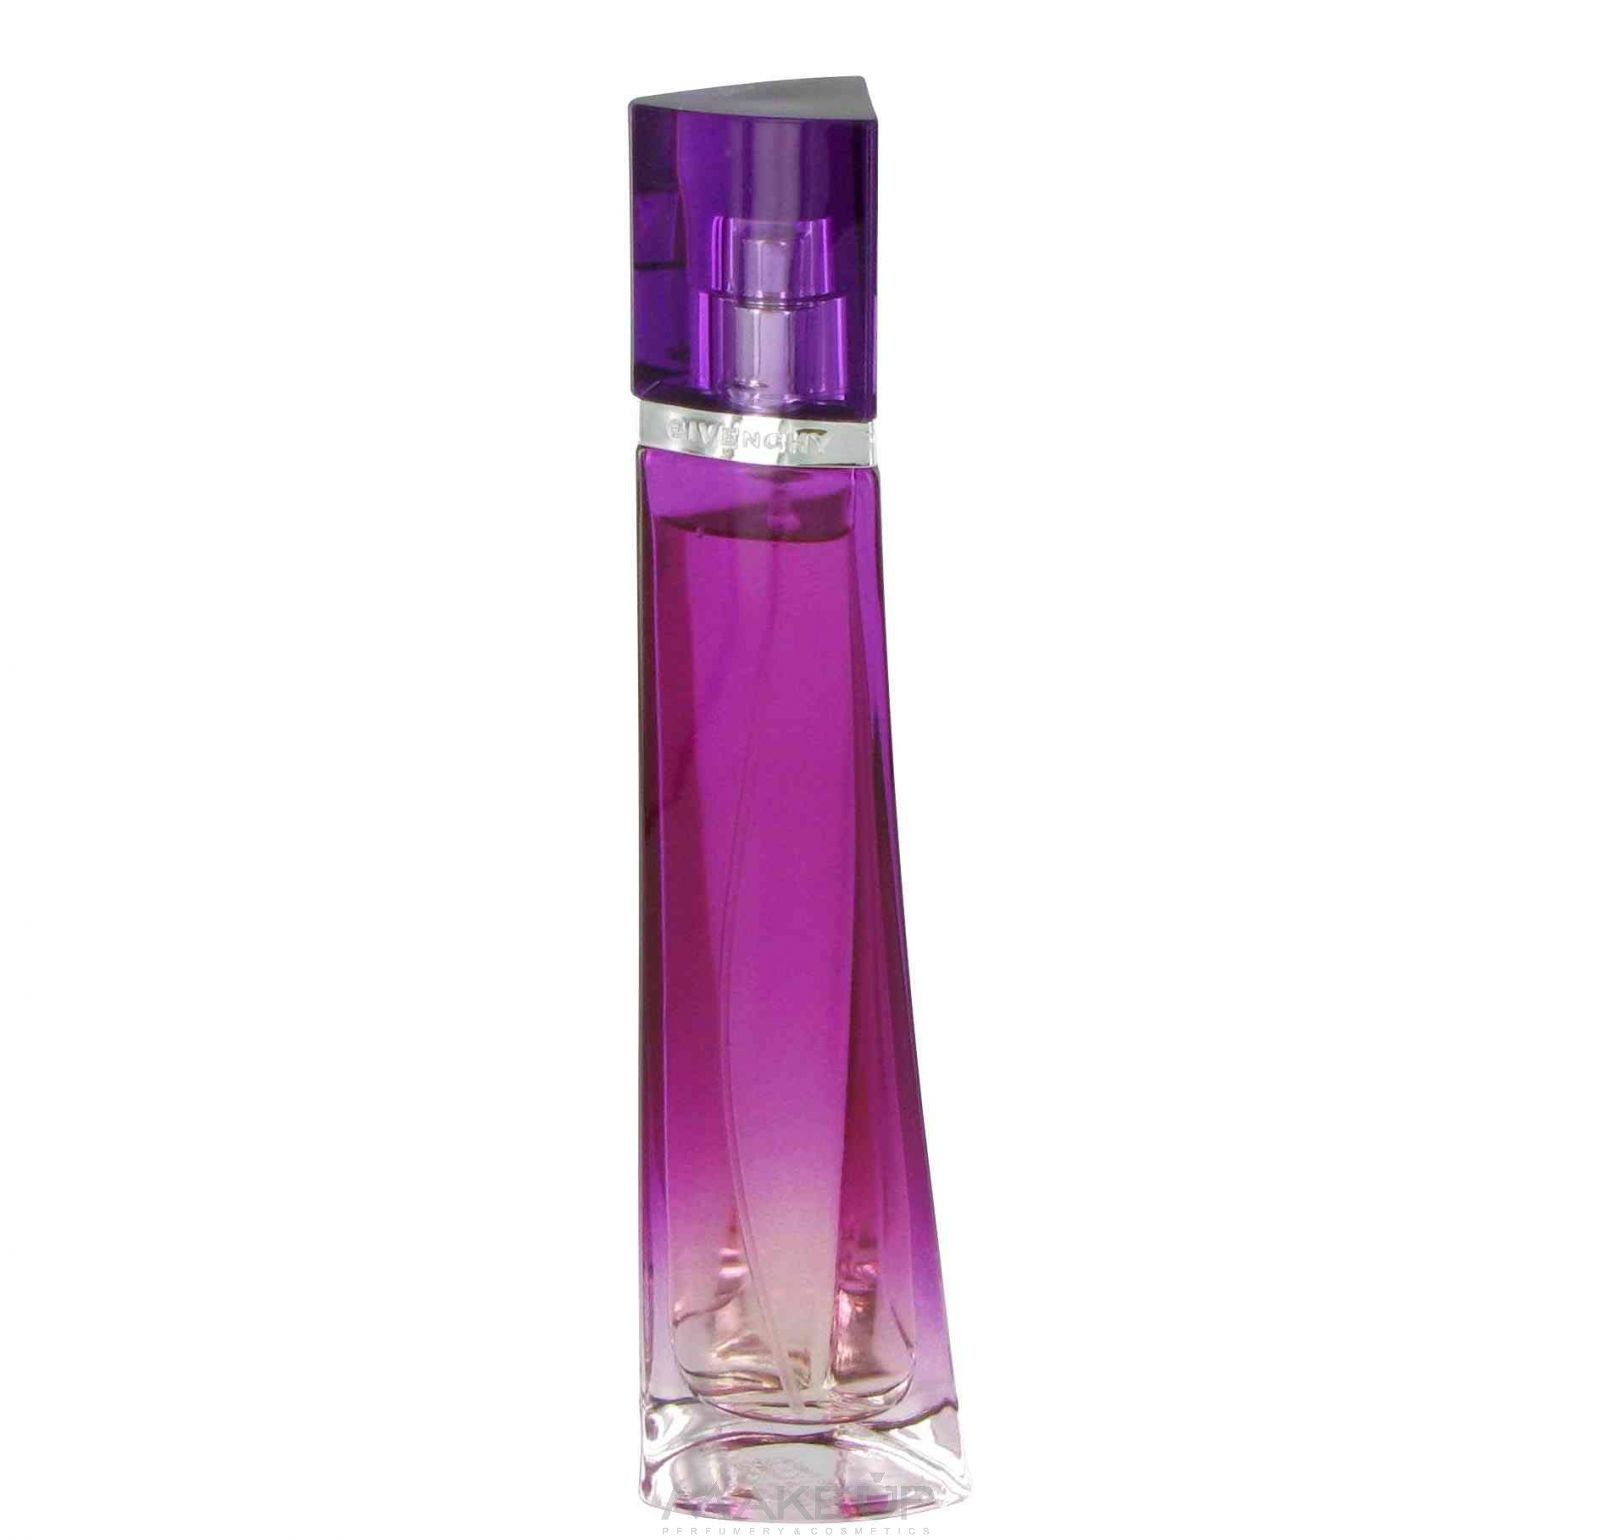 картинка Givenchy Very Irresistible Sensual Tester от магазина Авуар